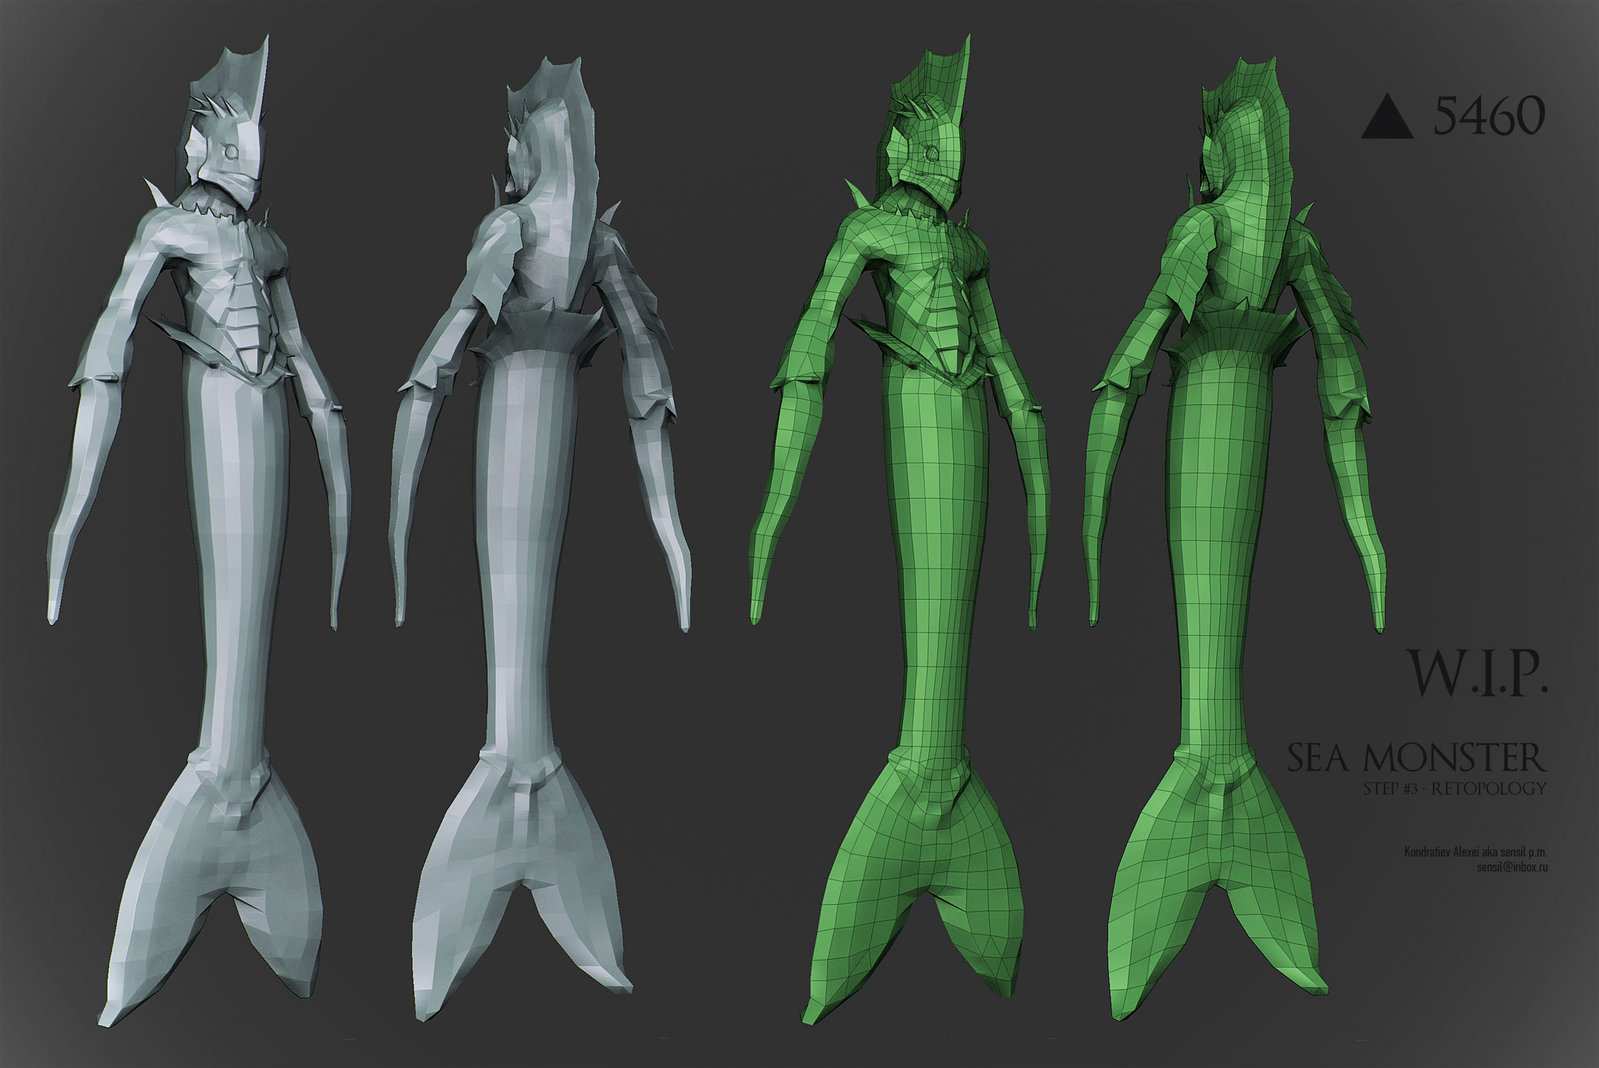 sea monster_concept11.jpg